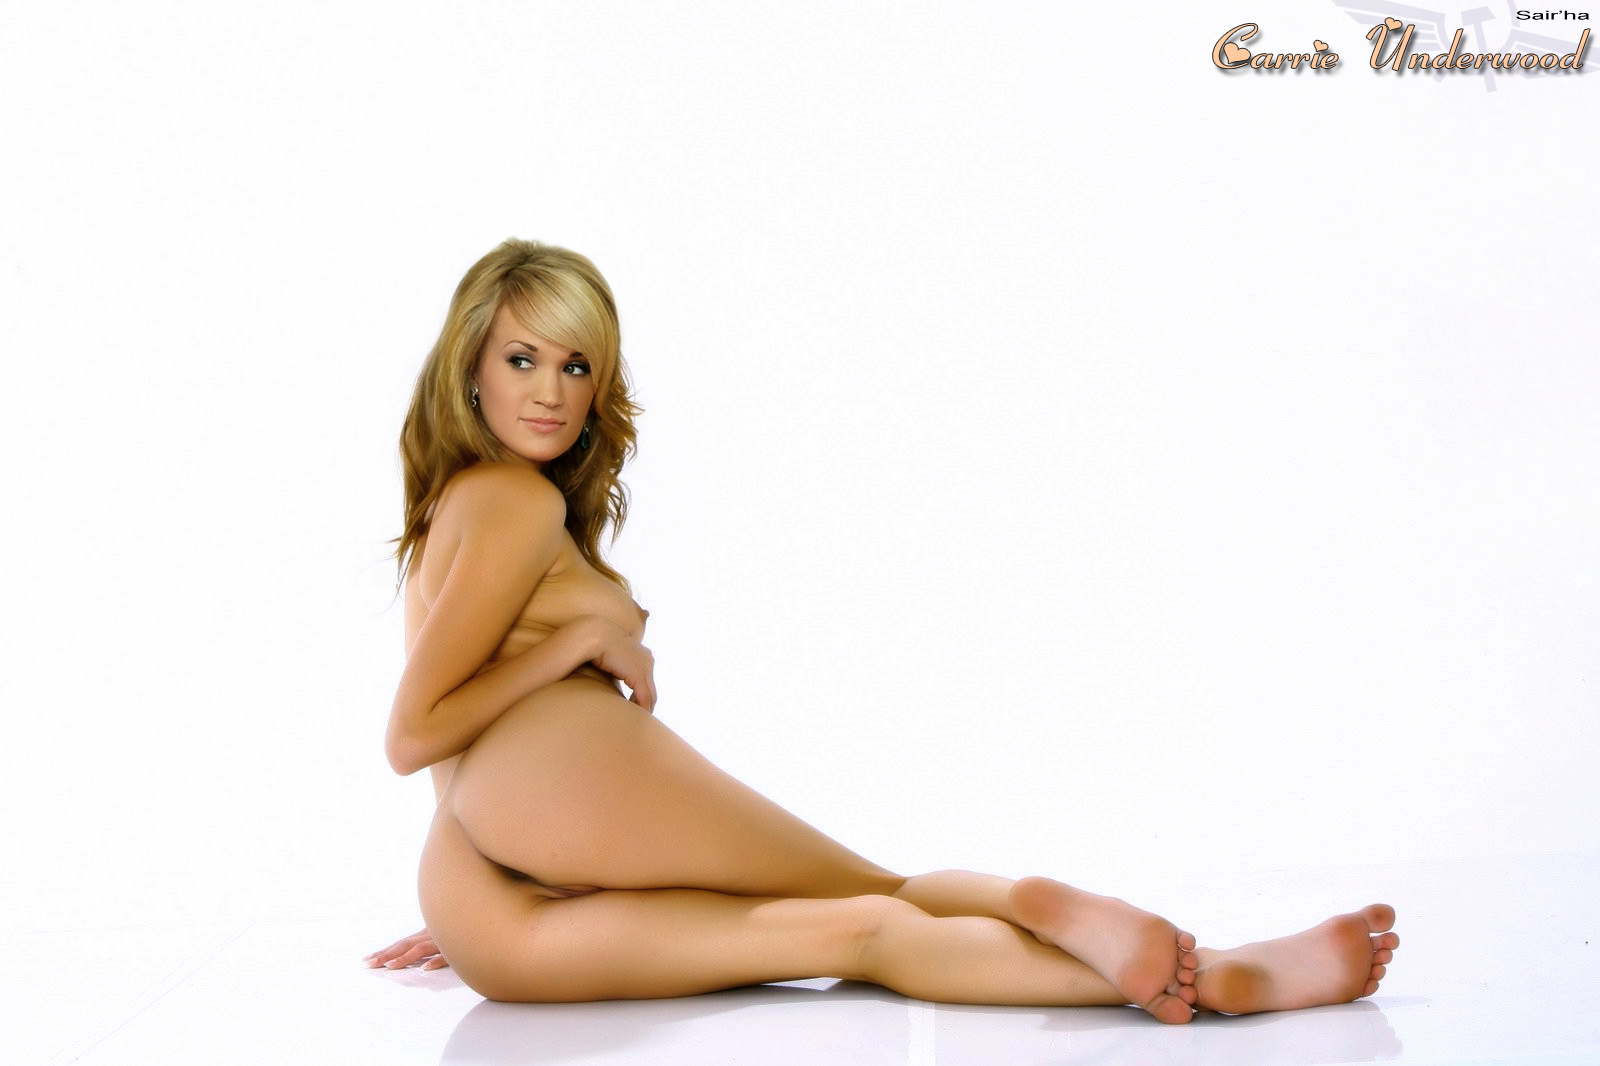 Carrie underwood nude will